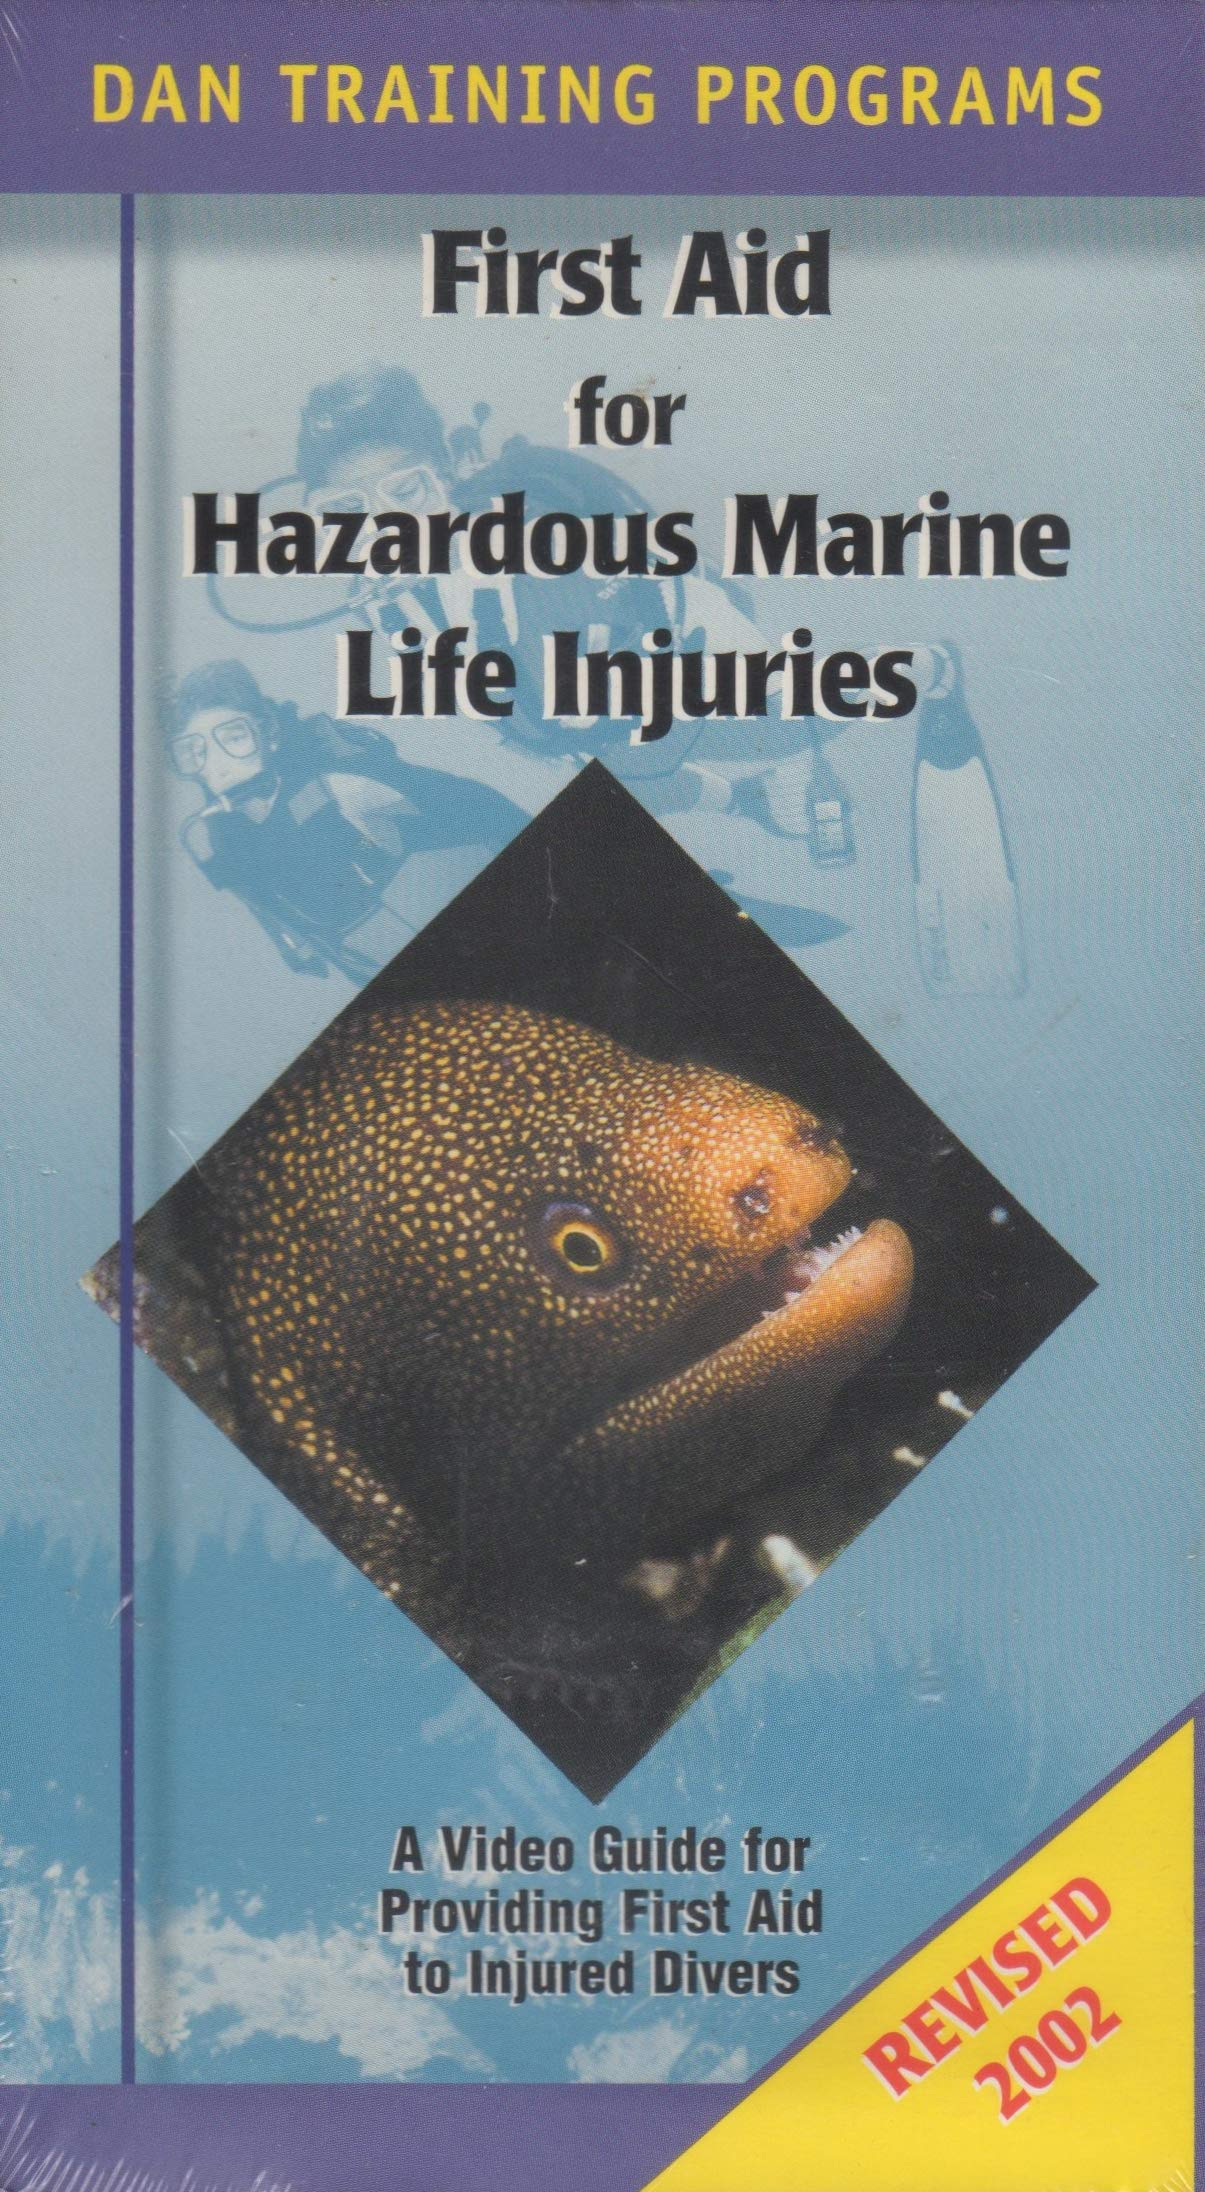 DAN Guide to Hazardous Marine Life: A Video Guide for First Aid Training for Injuries Caused by Hazardous Marine Life (Divers Alert Network Series) [VHS Video] by Divers Alert Network